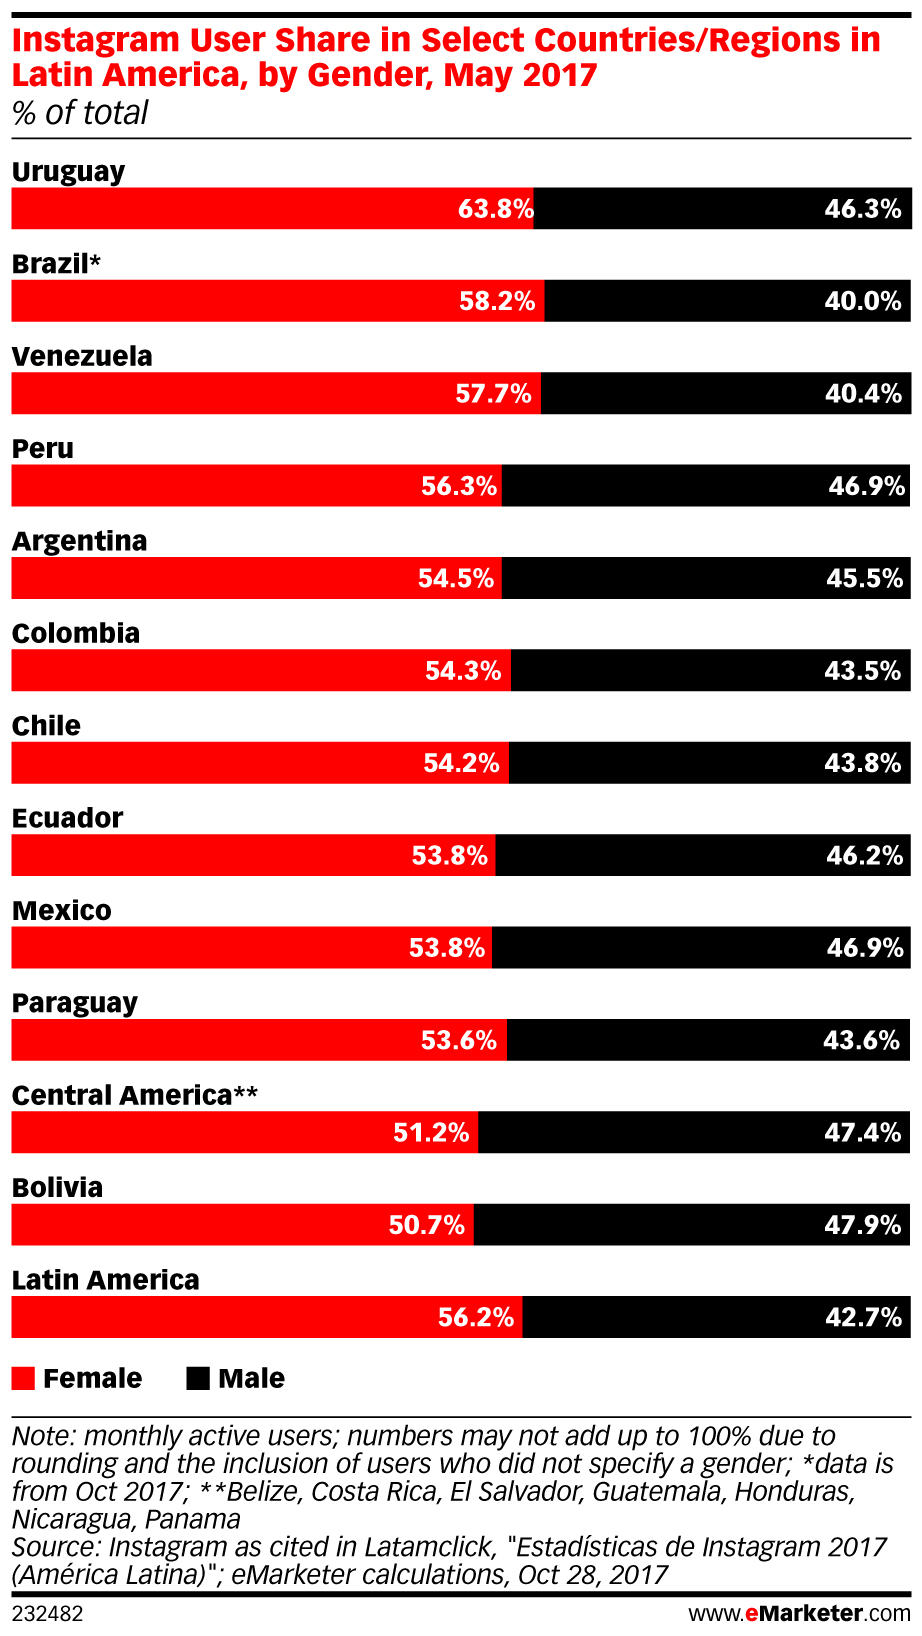 eMarketer_Instagram_User_Share_in_Select_Countries_Regions_in_Latin_America_by_Gender_May_2017_232482.jpg